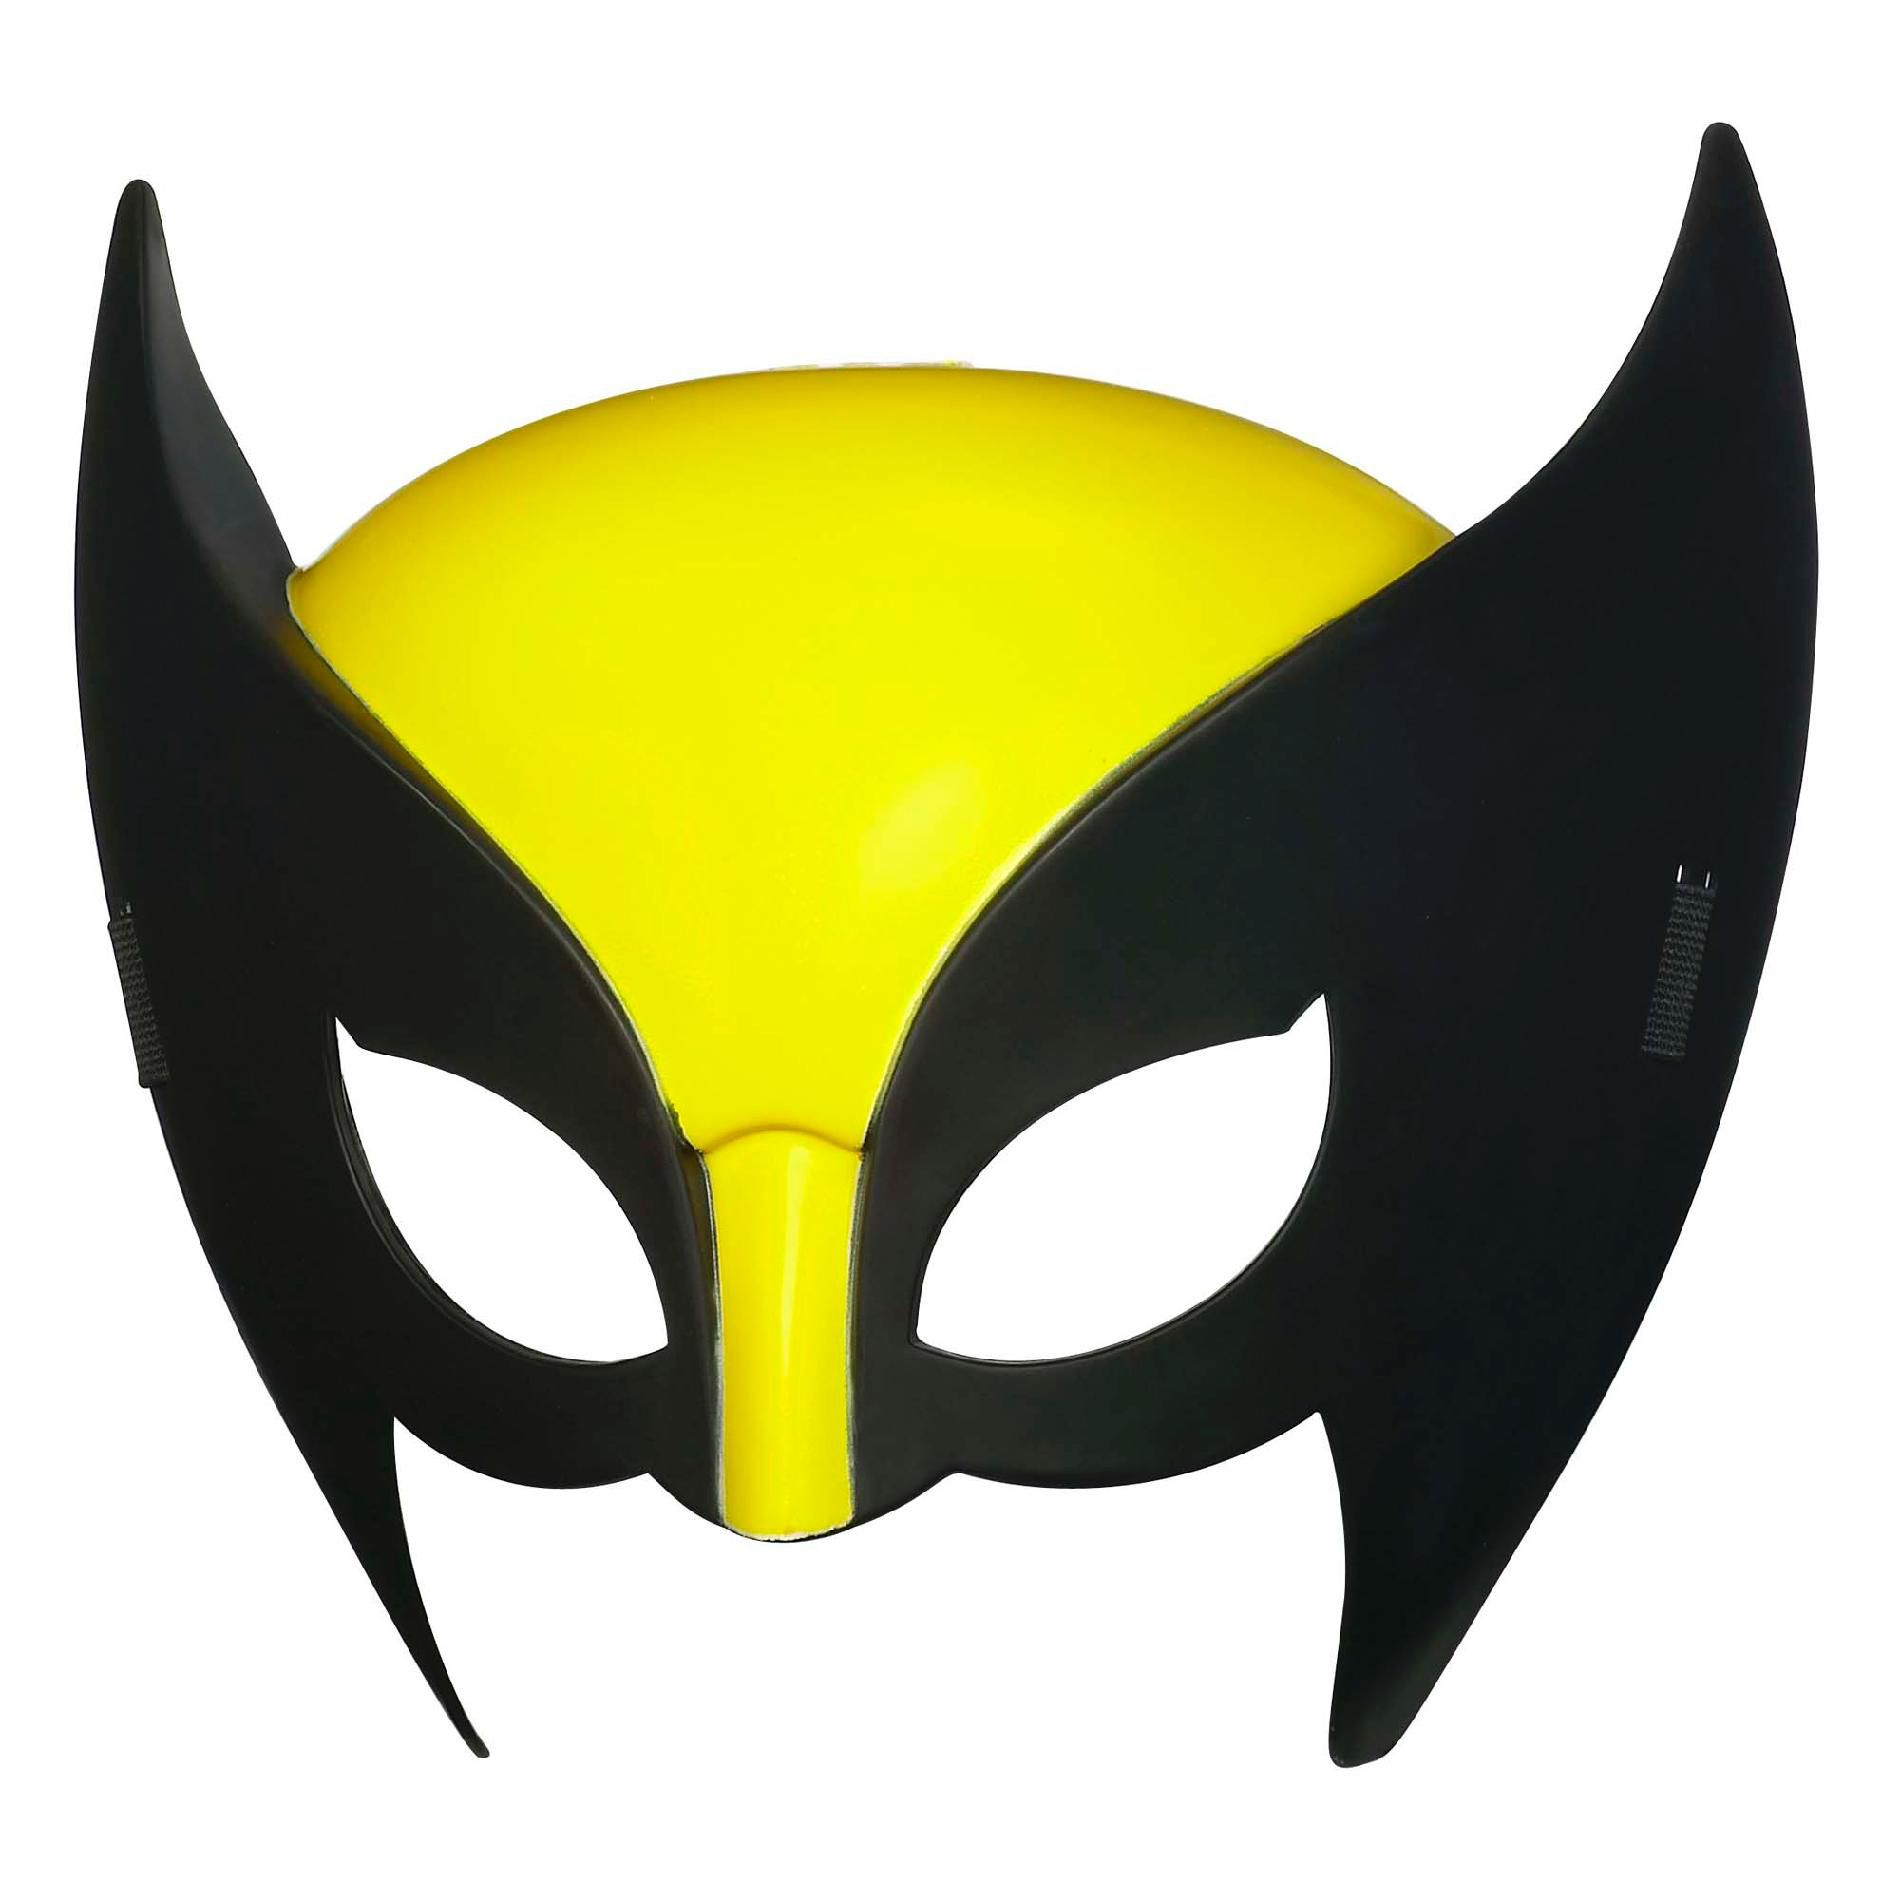 1900x1900 Mask Clipart Wolverine Free Collection Download And Share Mask